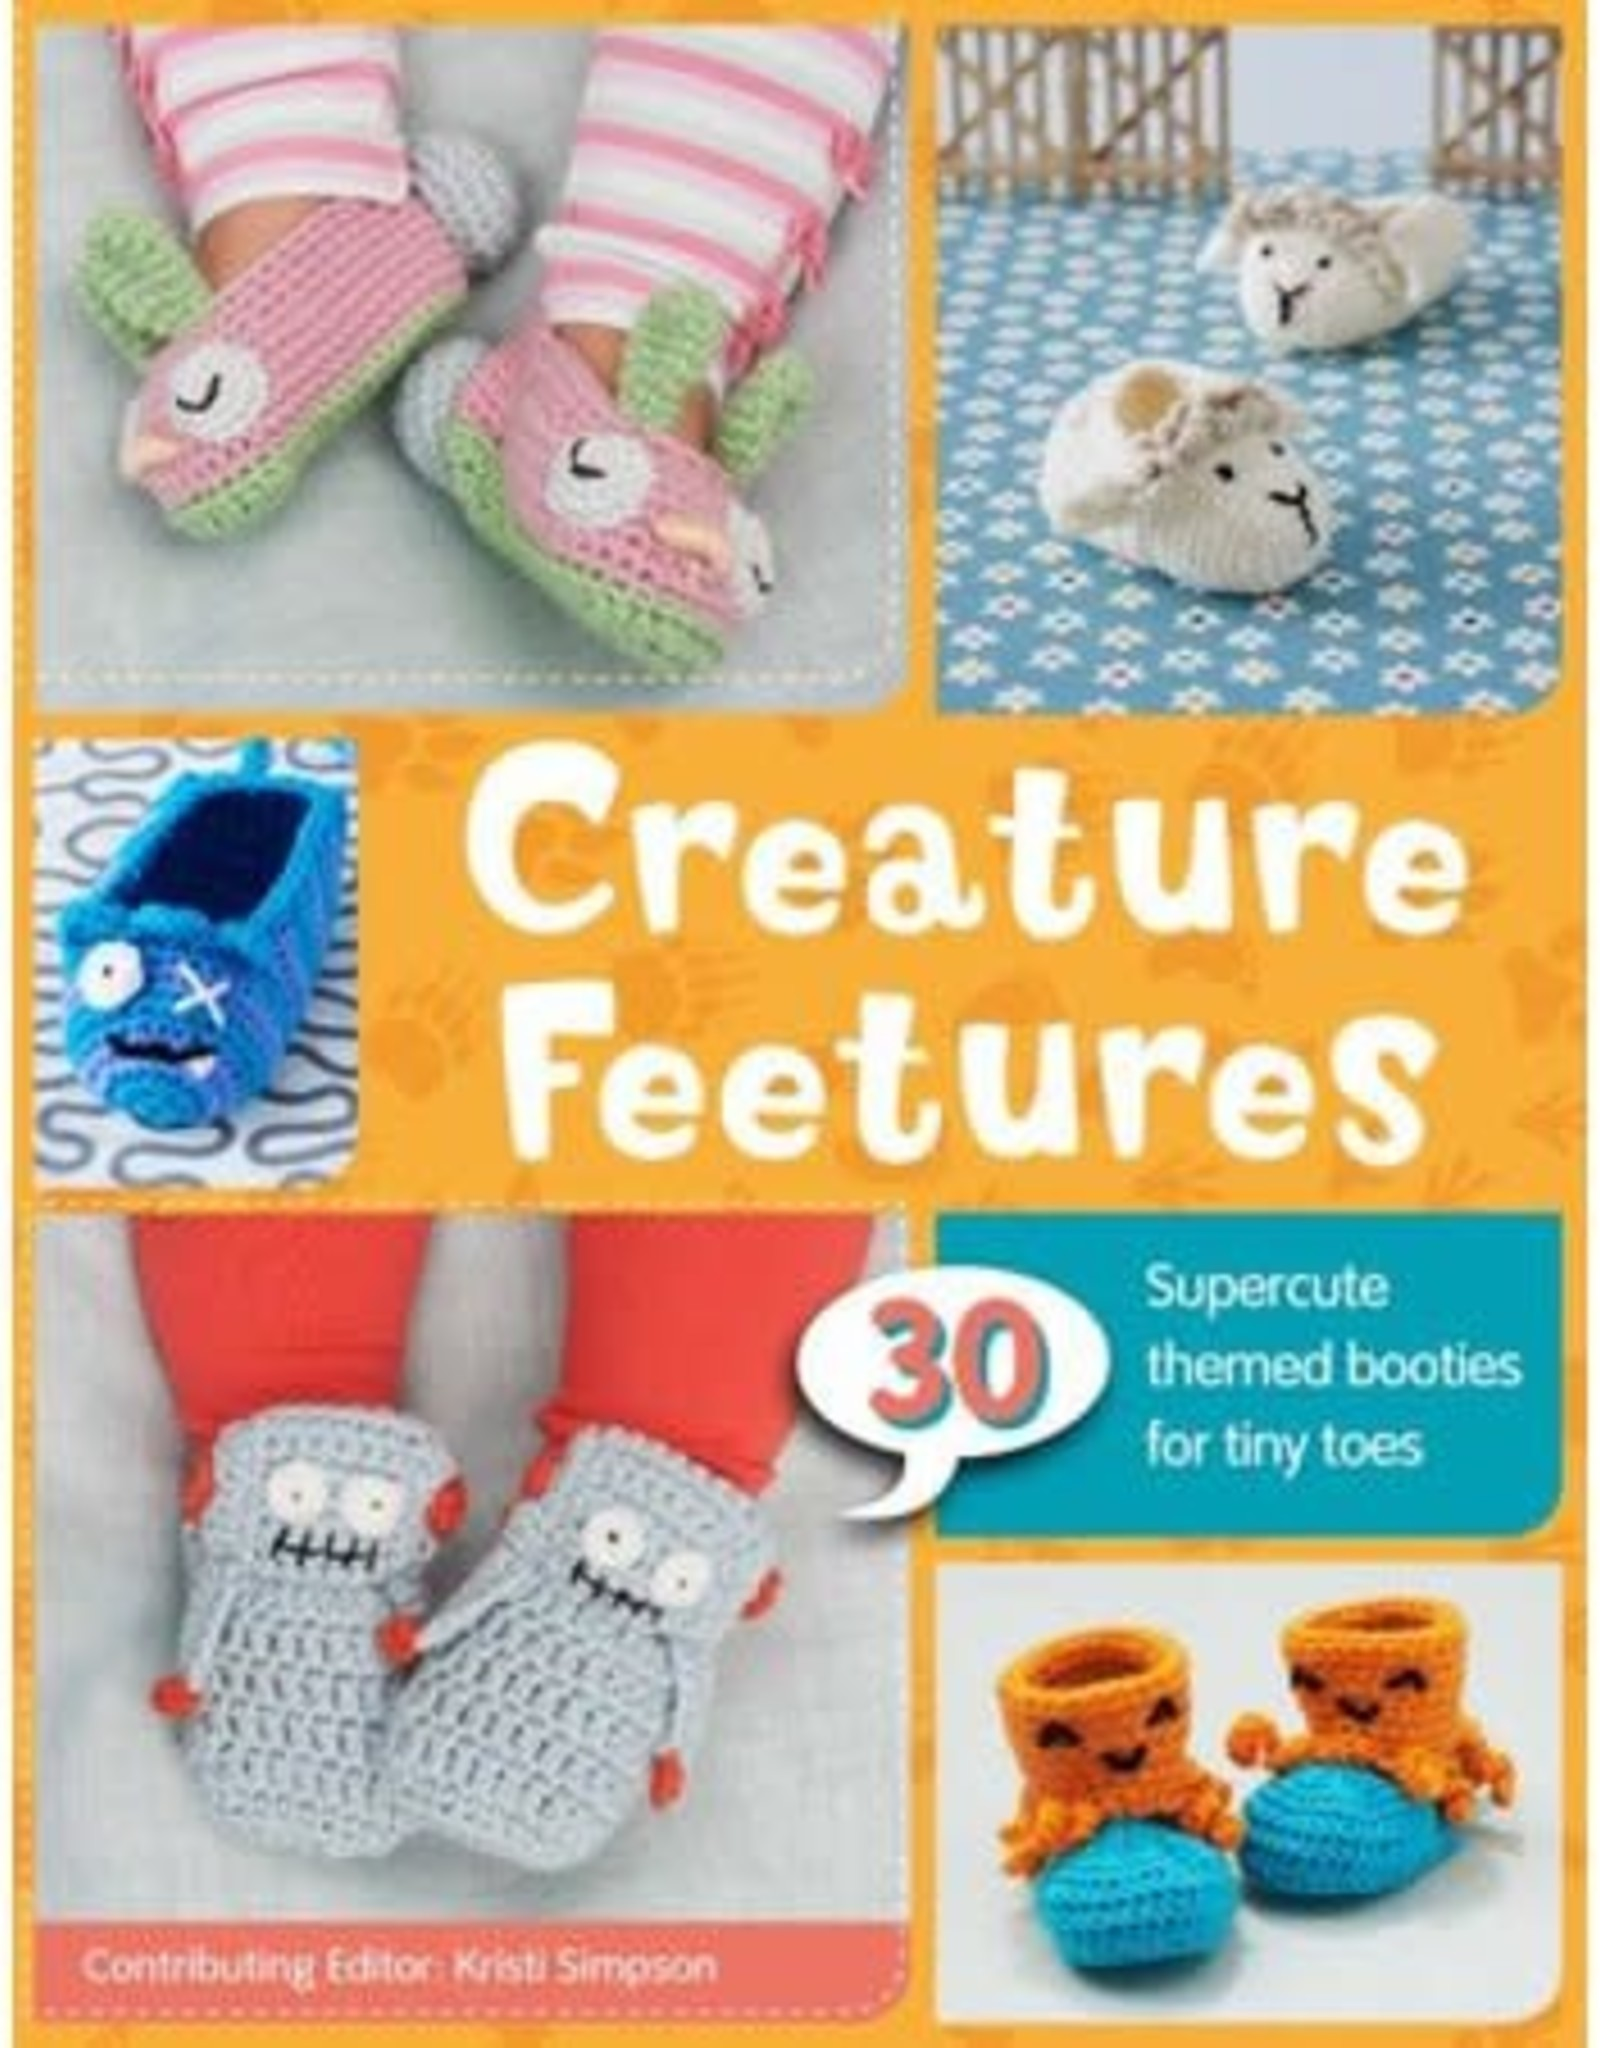 Creature Feetures: 30 Crochet Patterns for Baby Booties